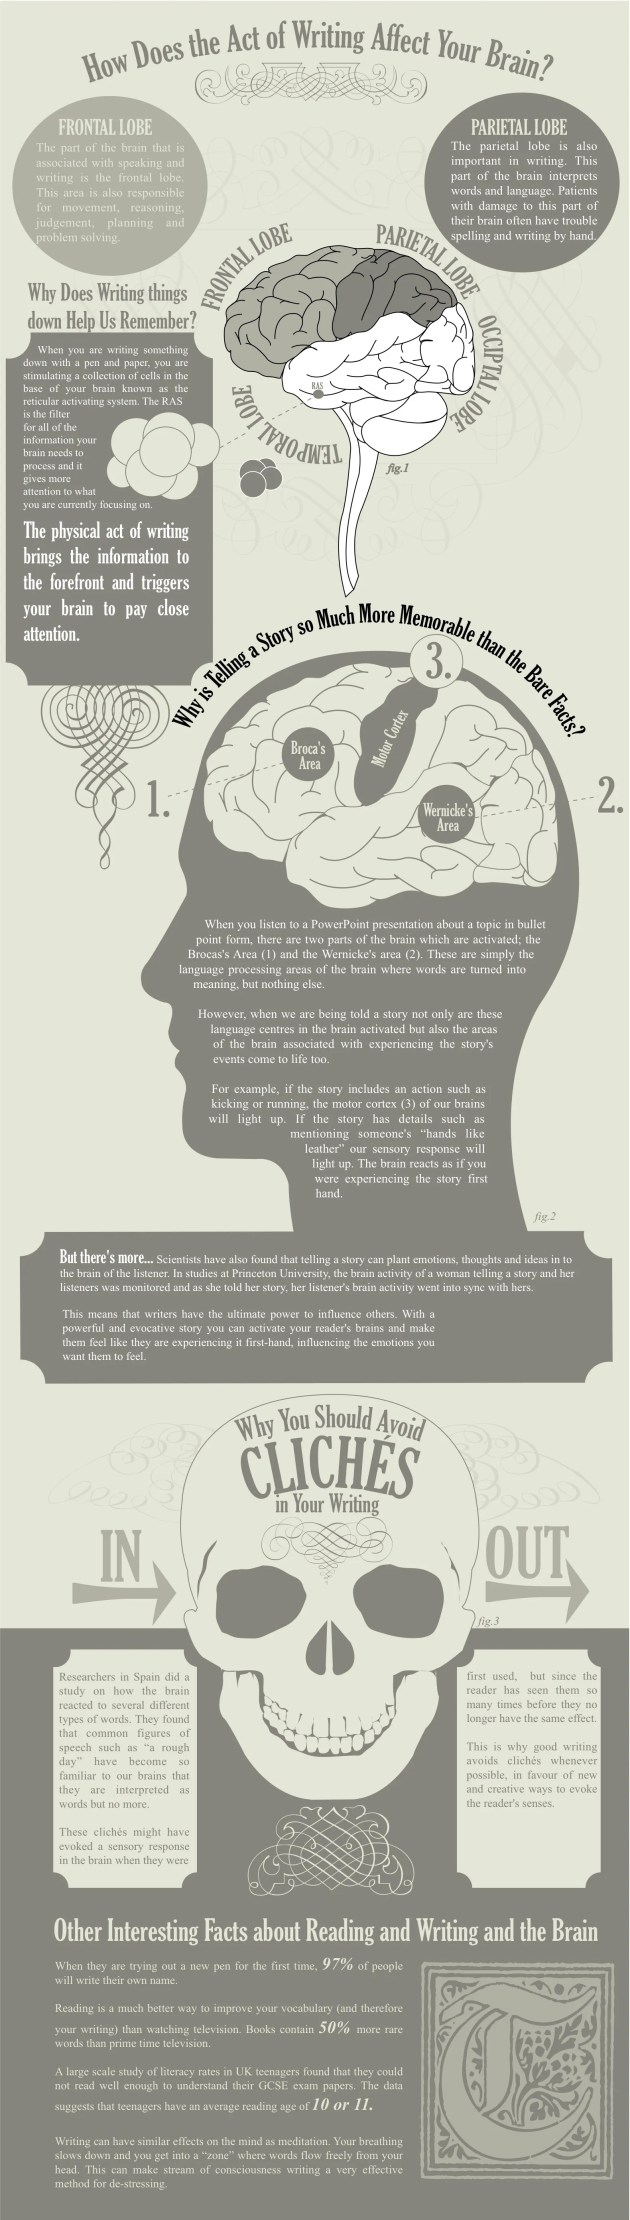 how-does-the-act-of-writing-affect-your-brain